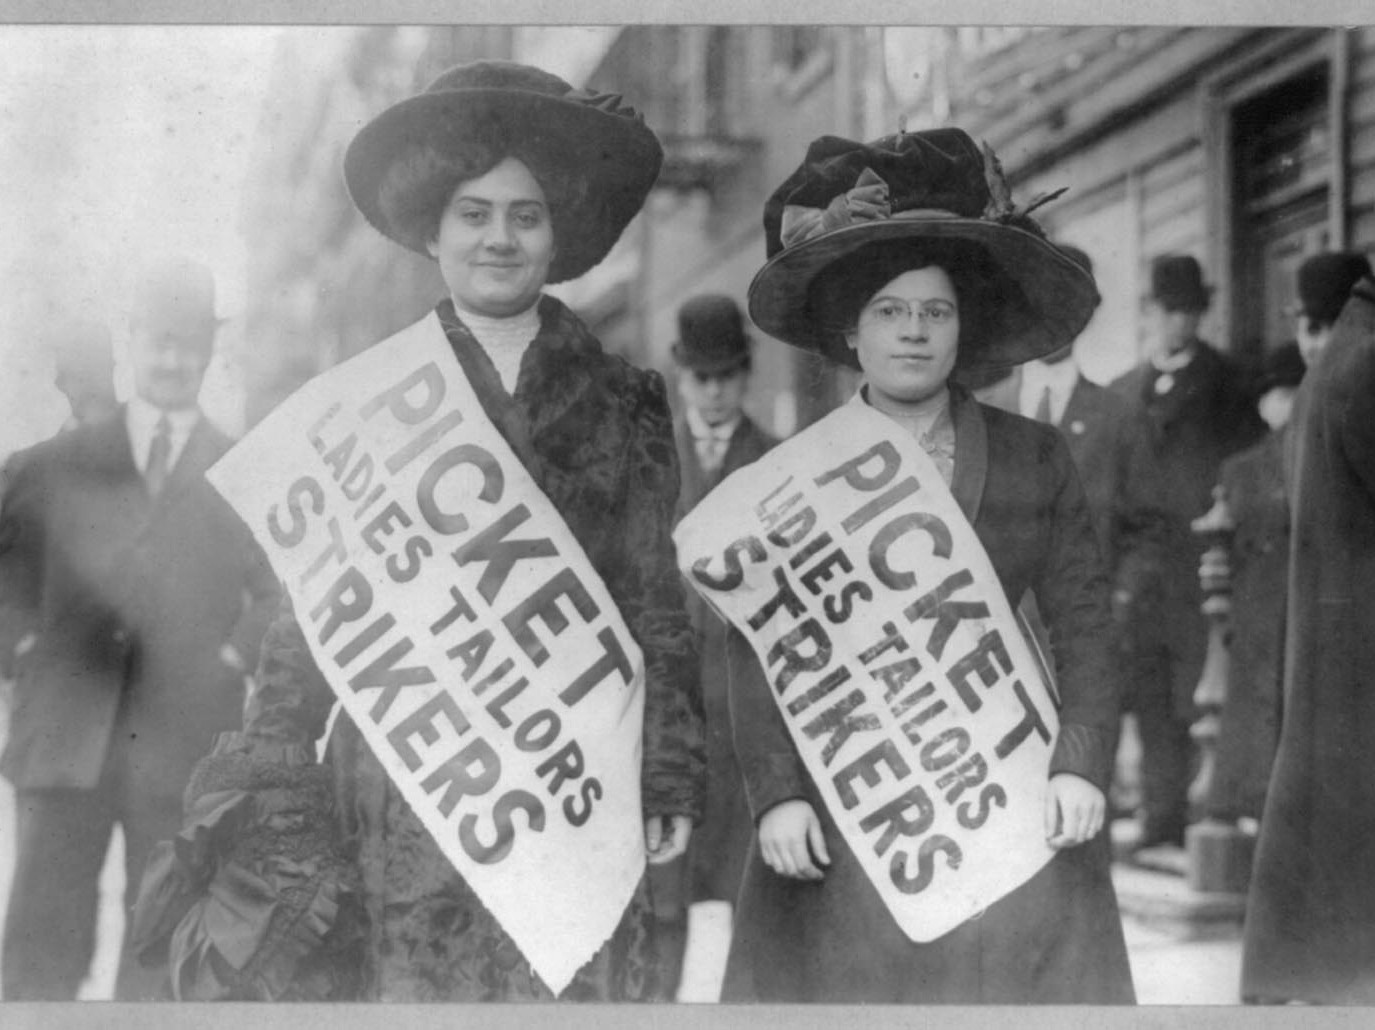 Two women picketing for garment workers rights in 1909.